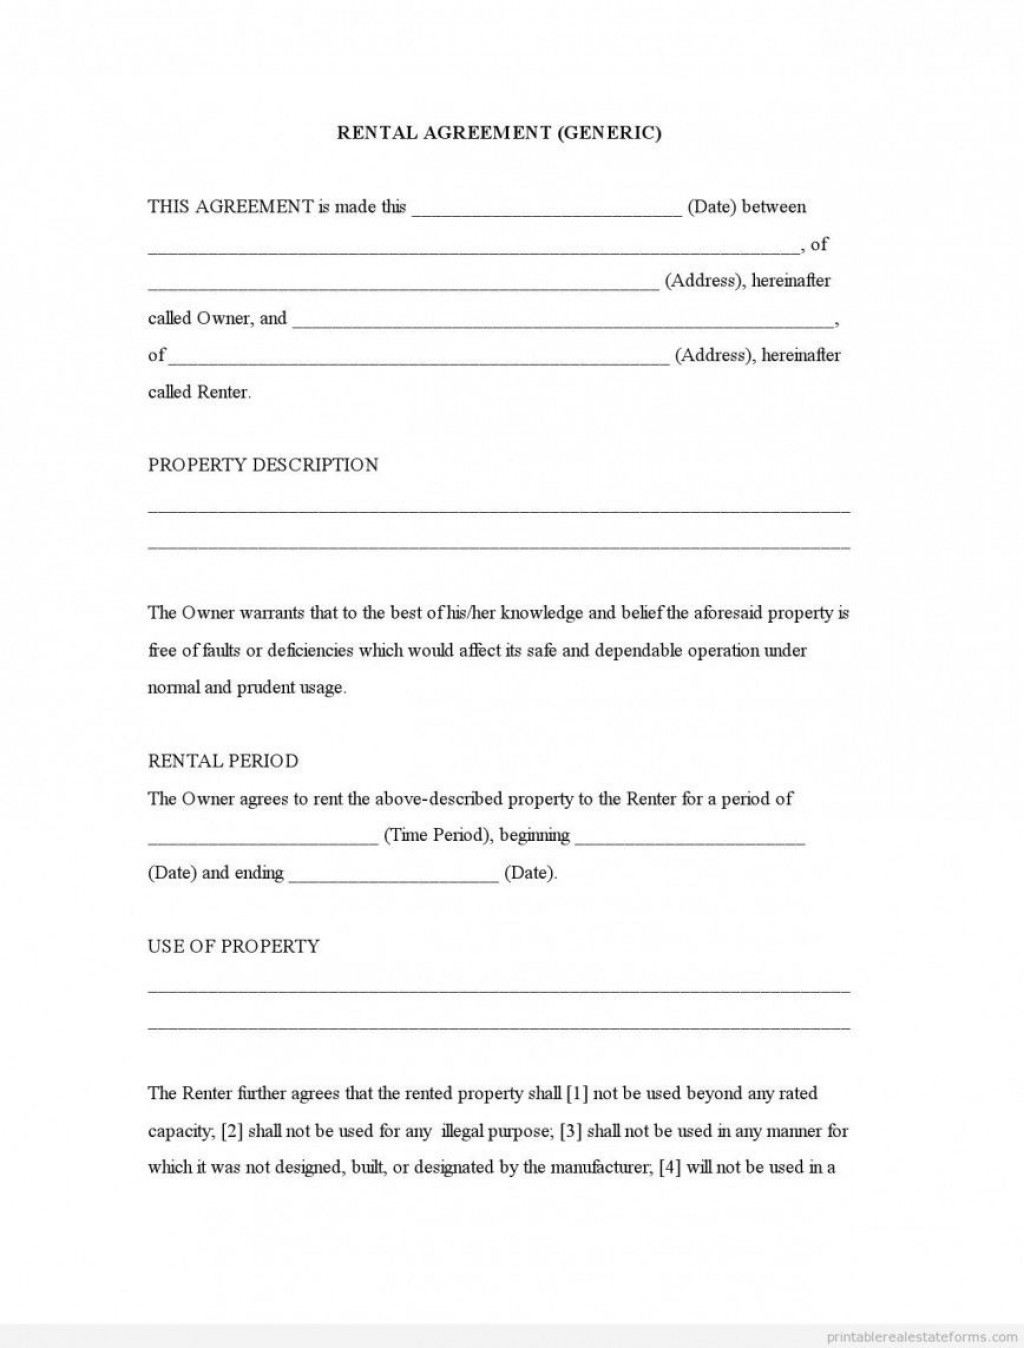 001 Rare Rental Agreement Template Free Photo  Lease Format Bangalore Download Word South Africa Room DocLarge